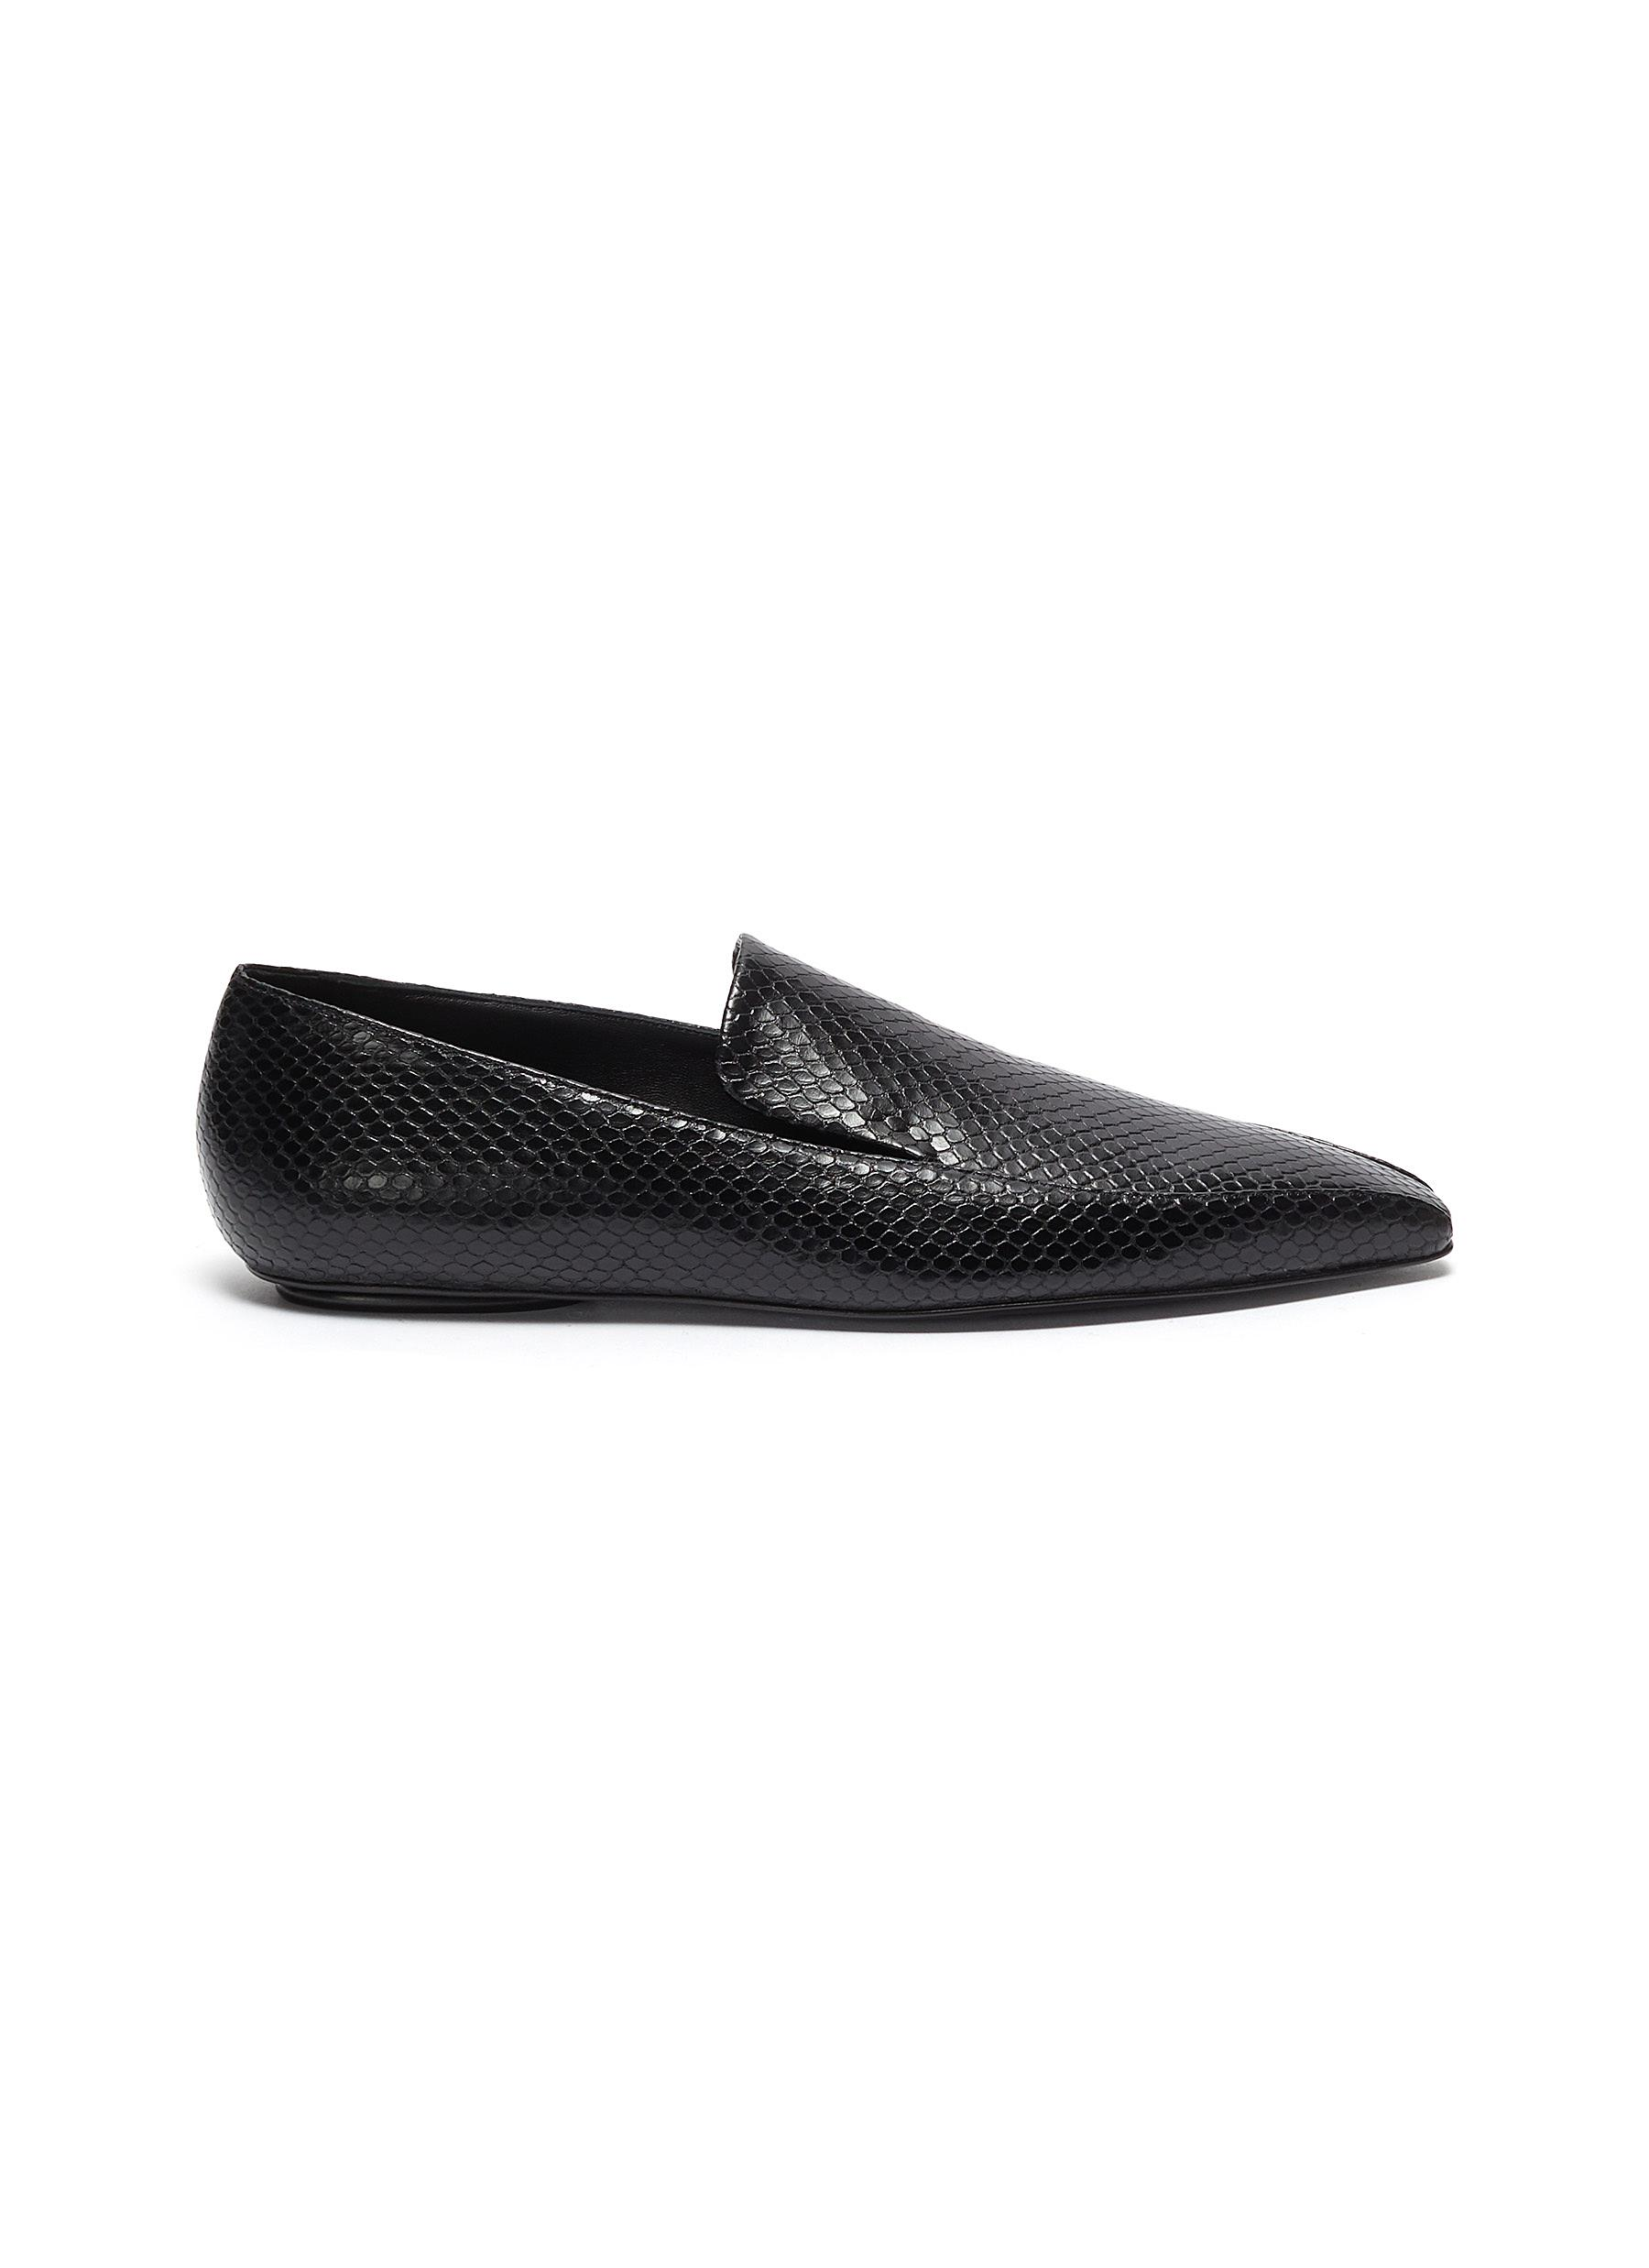 Rosetta Getty Flats Snake DOrsay leather loafers